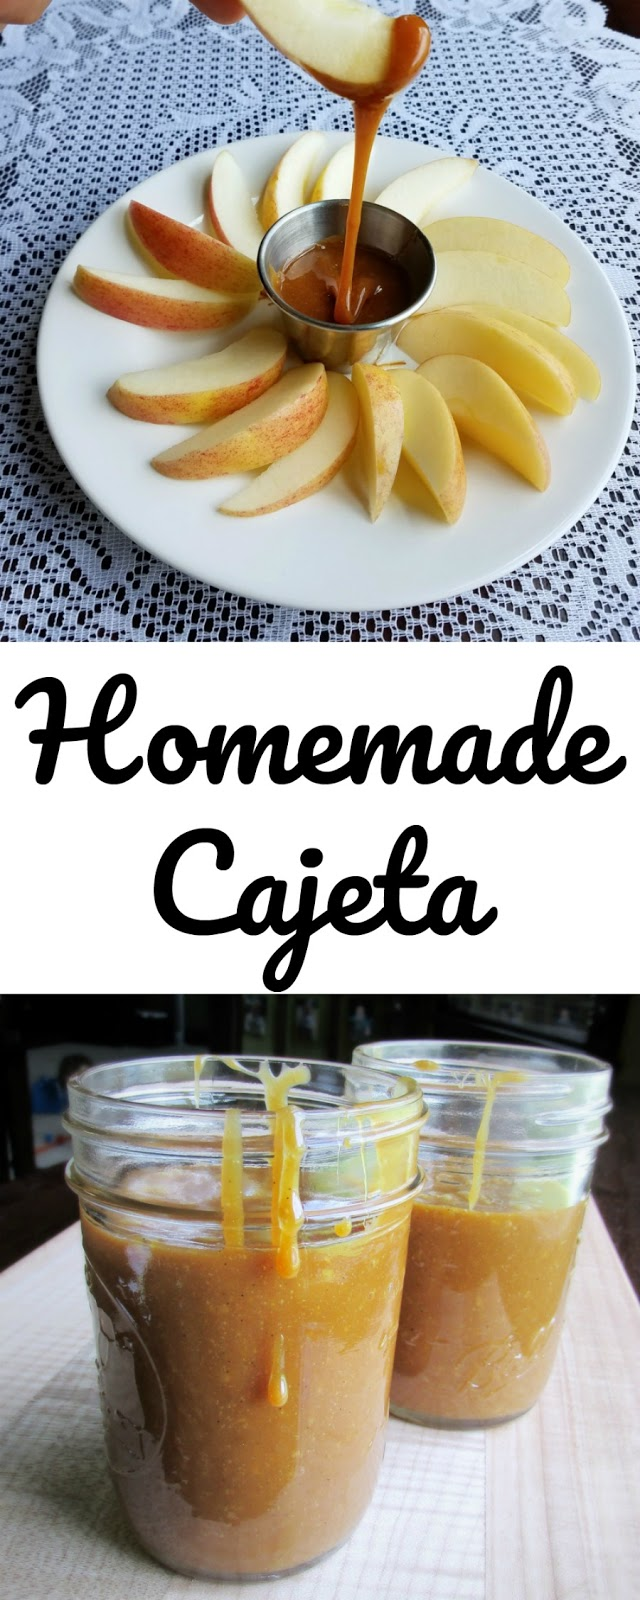 This Cajeta is liquid gold. It is thick, sweet and caramely. It is great over ice cream, pound cake, as a dip for apples or on a spoon! It is made with goat's milk for the full flavor, but this recipe could be easily made with cow's milk as well!